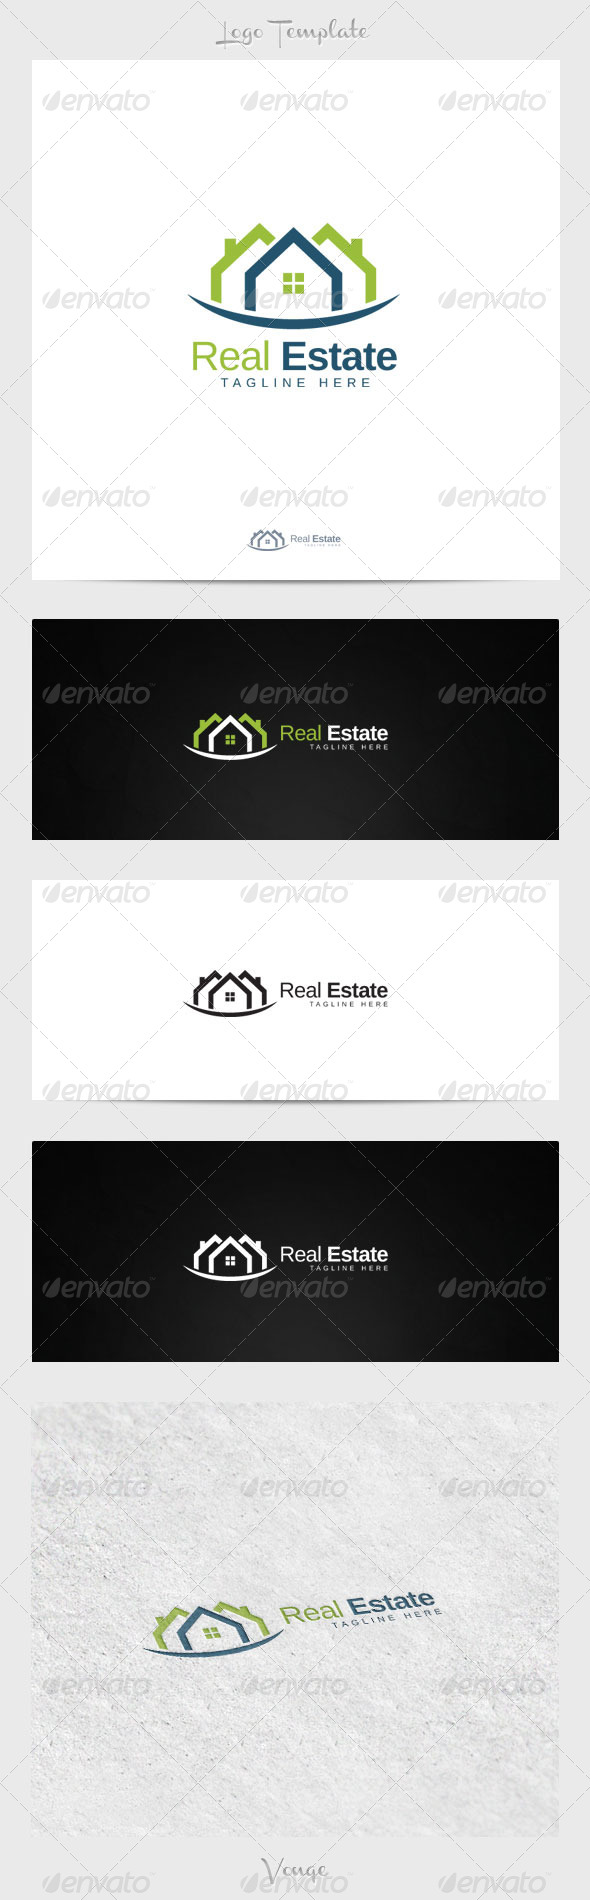 Real Estate Brand - Buildings Logo Templates